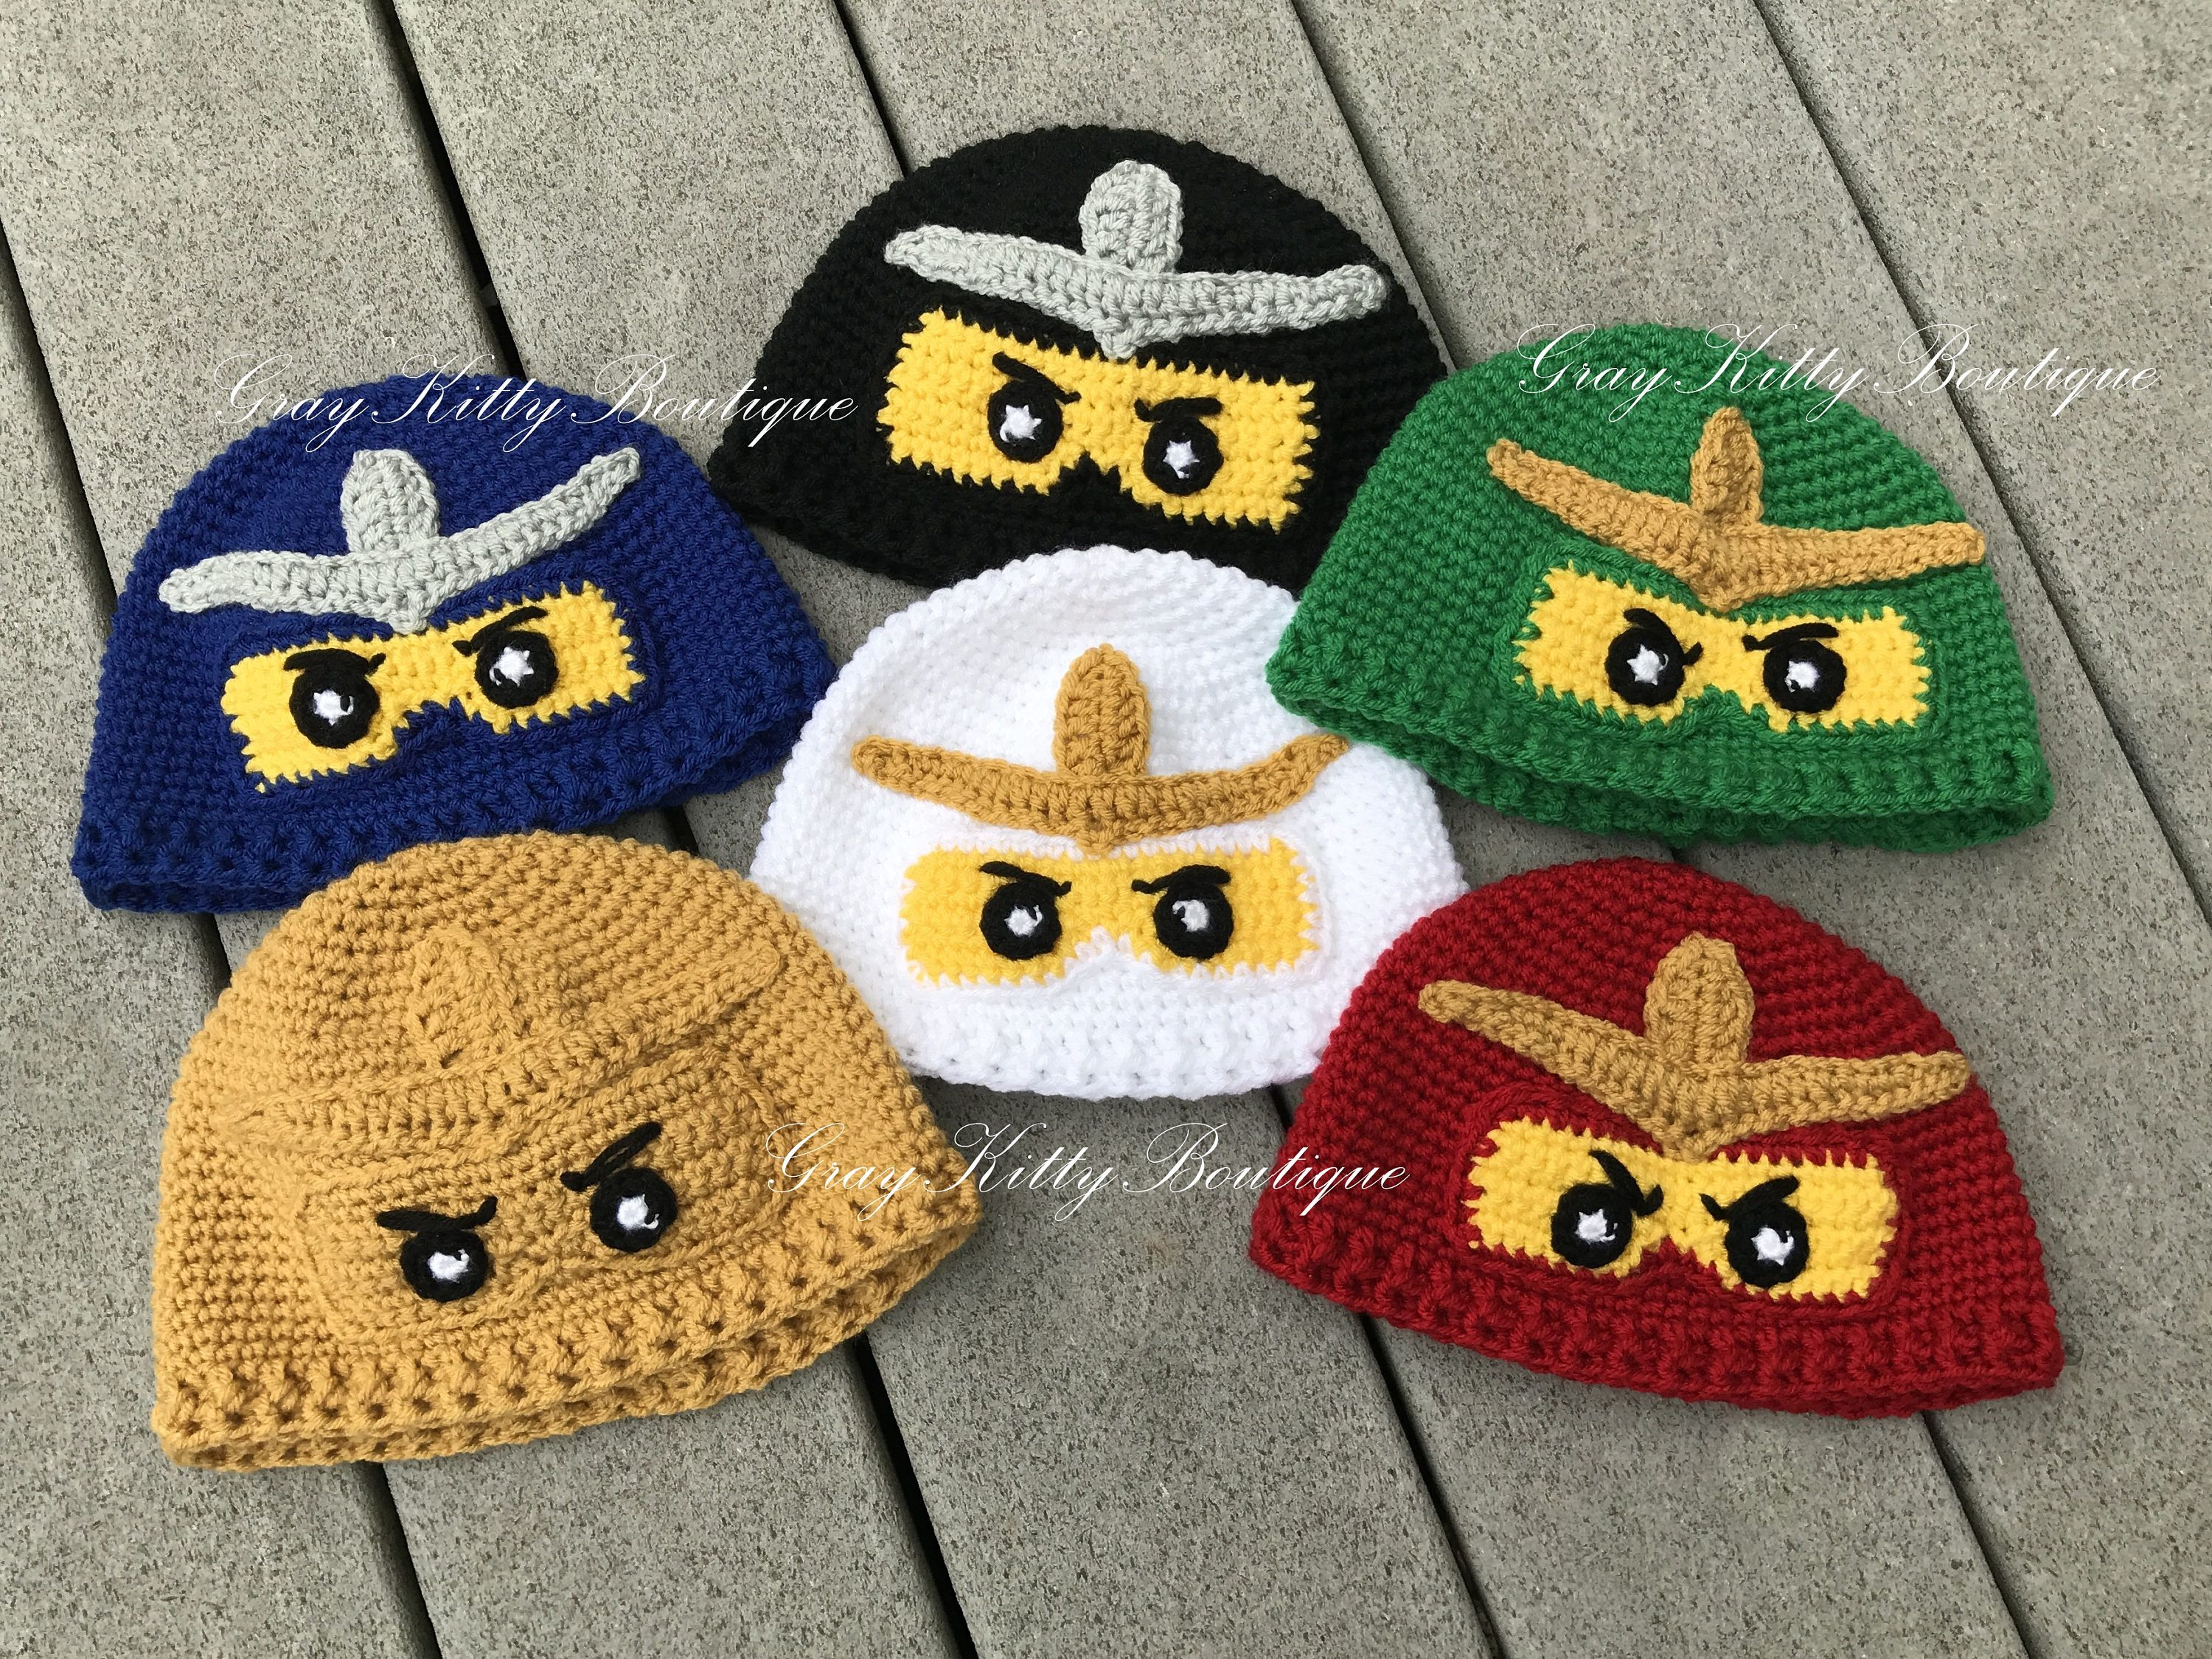 Lego Ninjago Hats Perfect For A Halloween Costume Or Just To Have